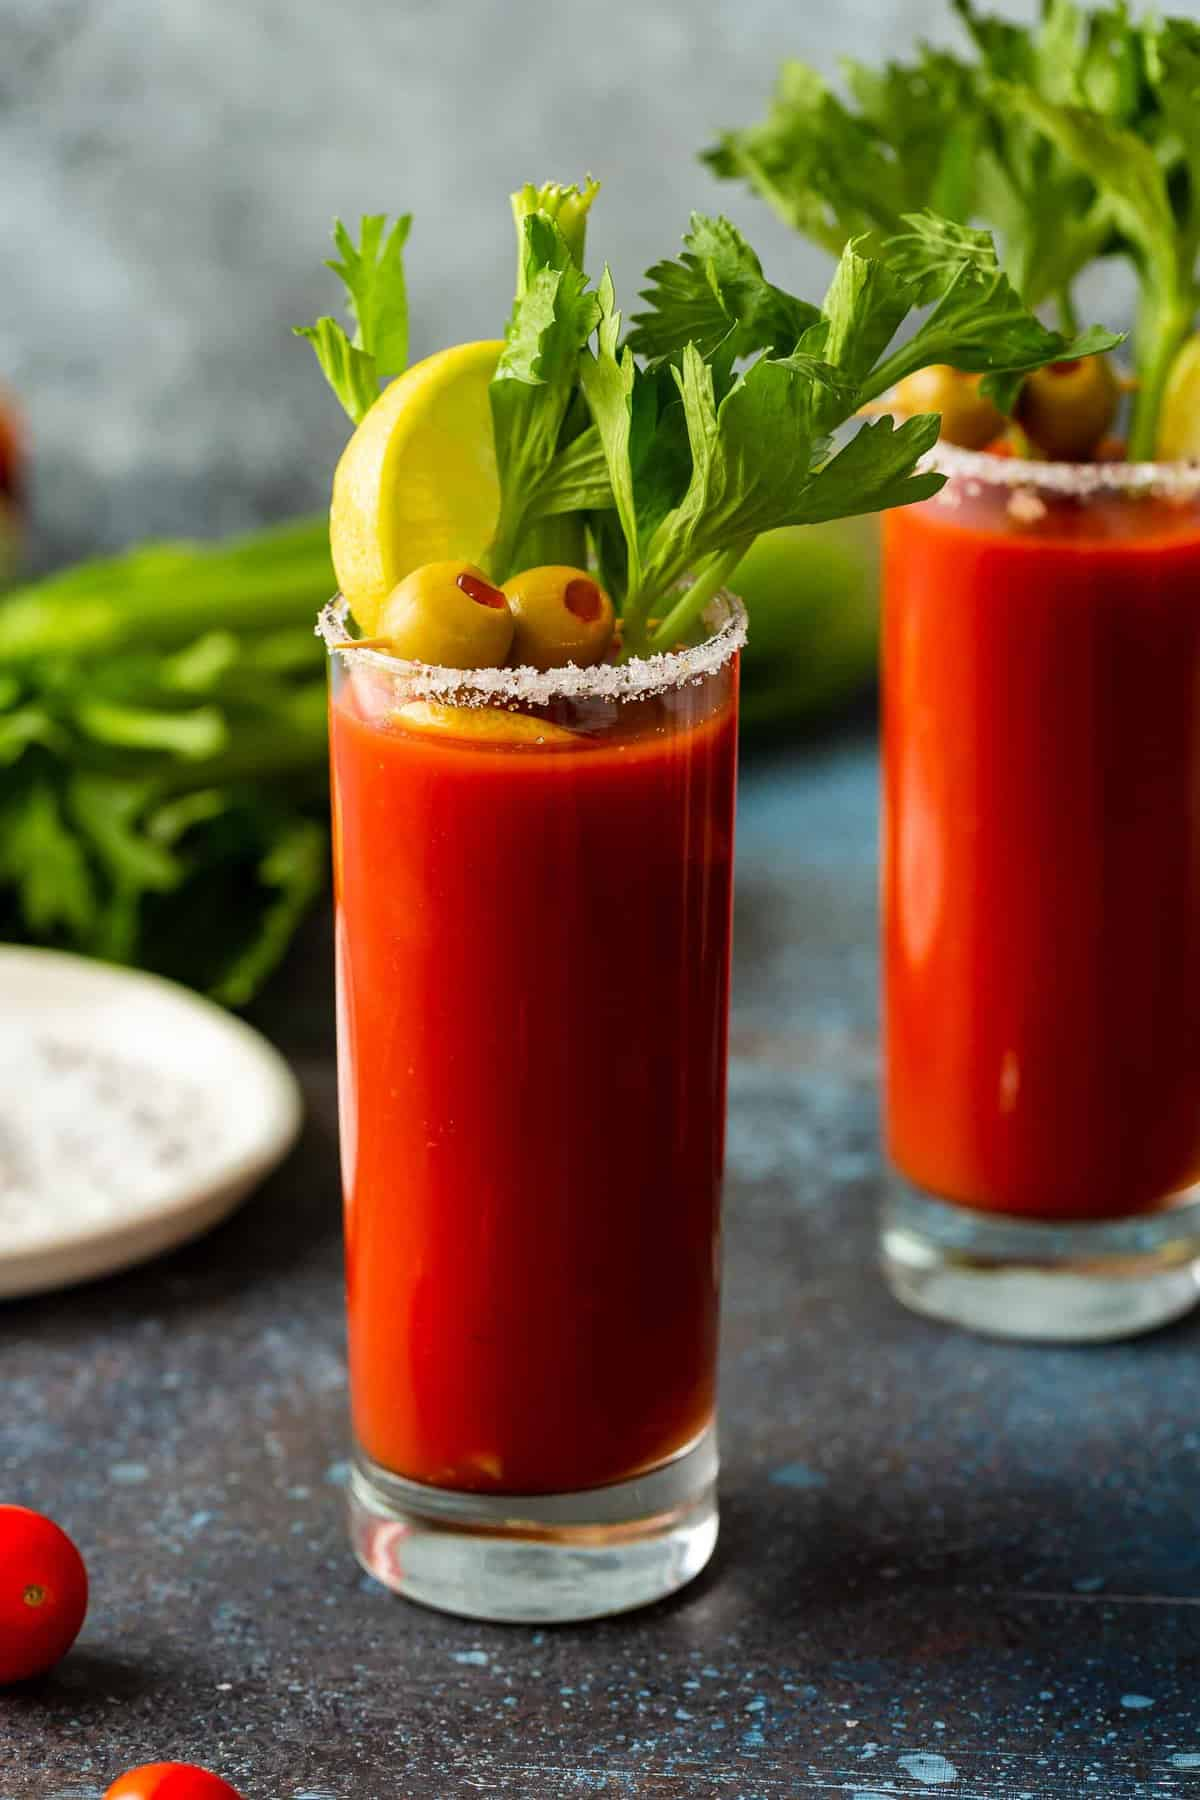 Two glasses of Bloody Mary with celery sticks.